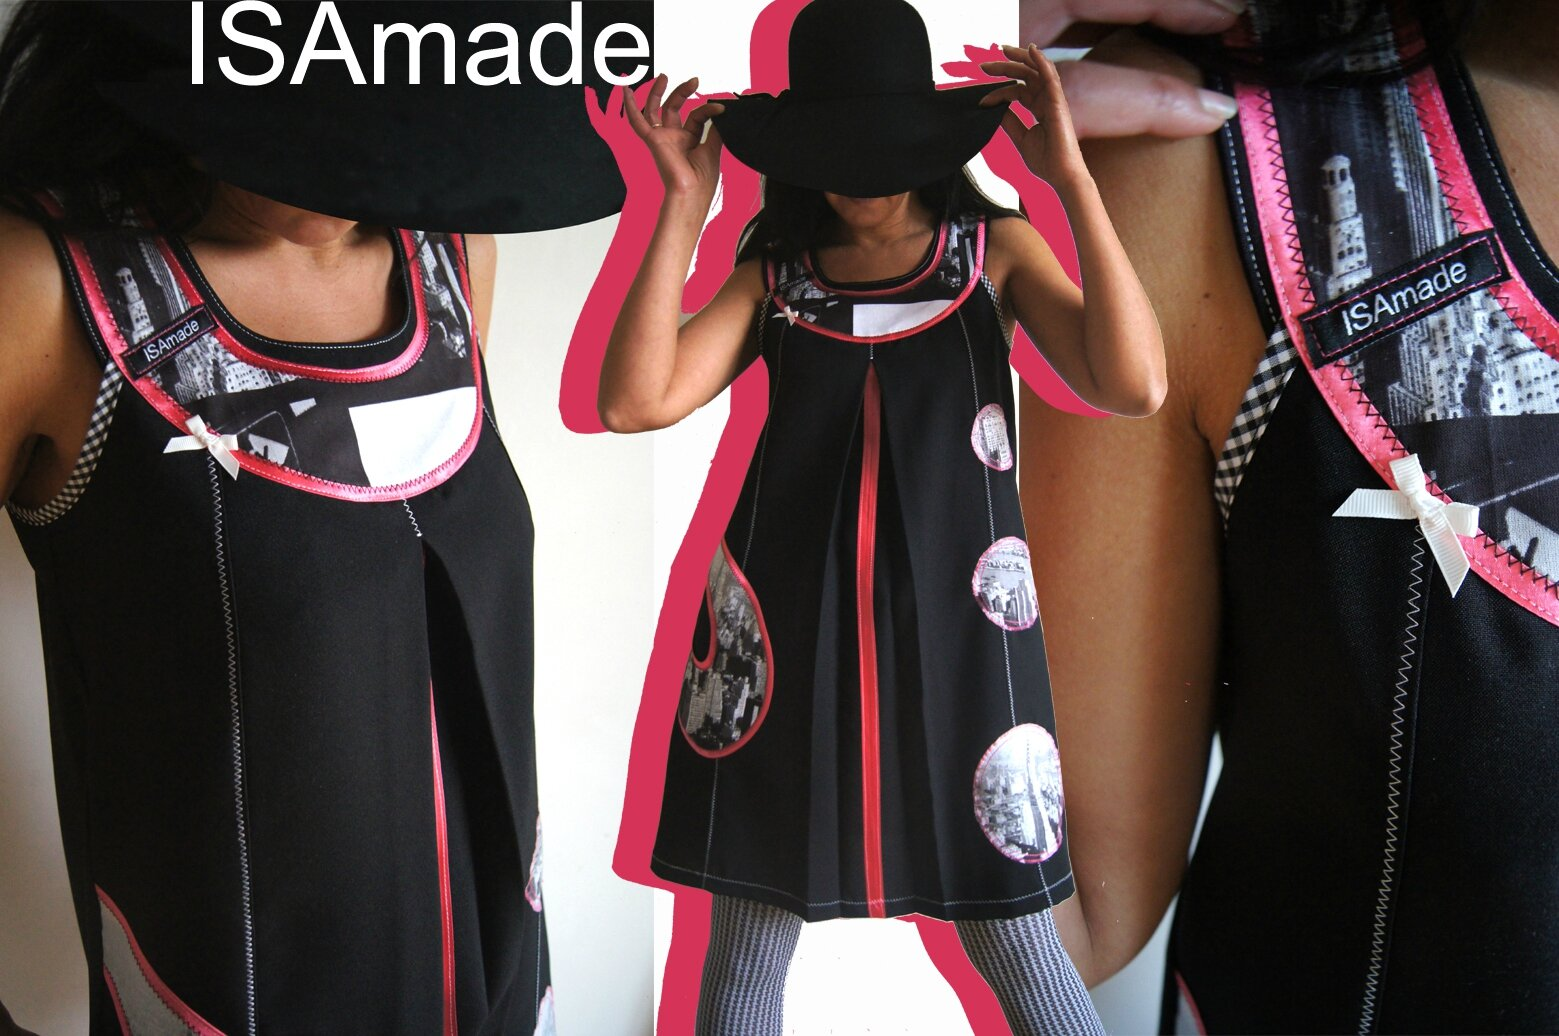 robe Chasuble ISAmade